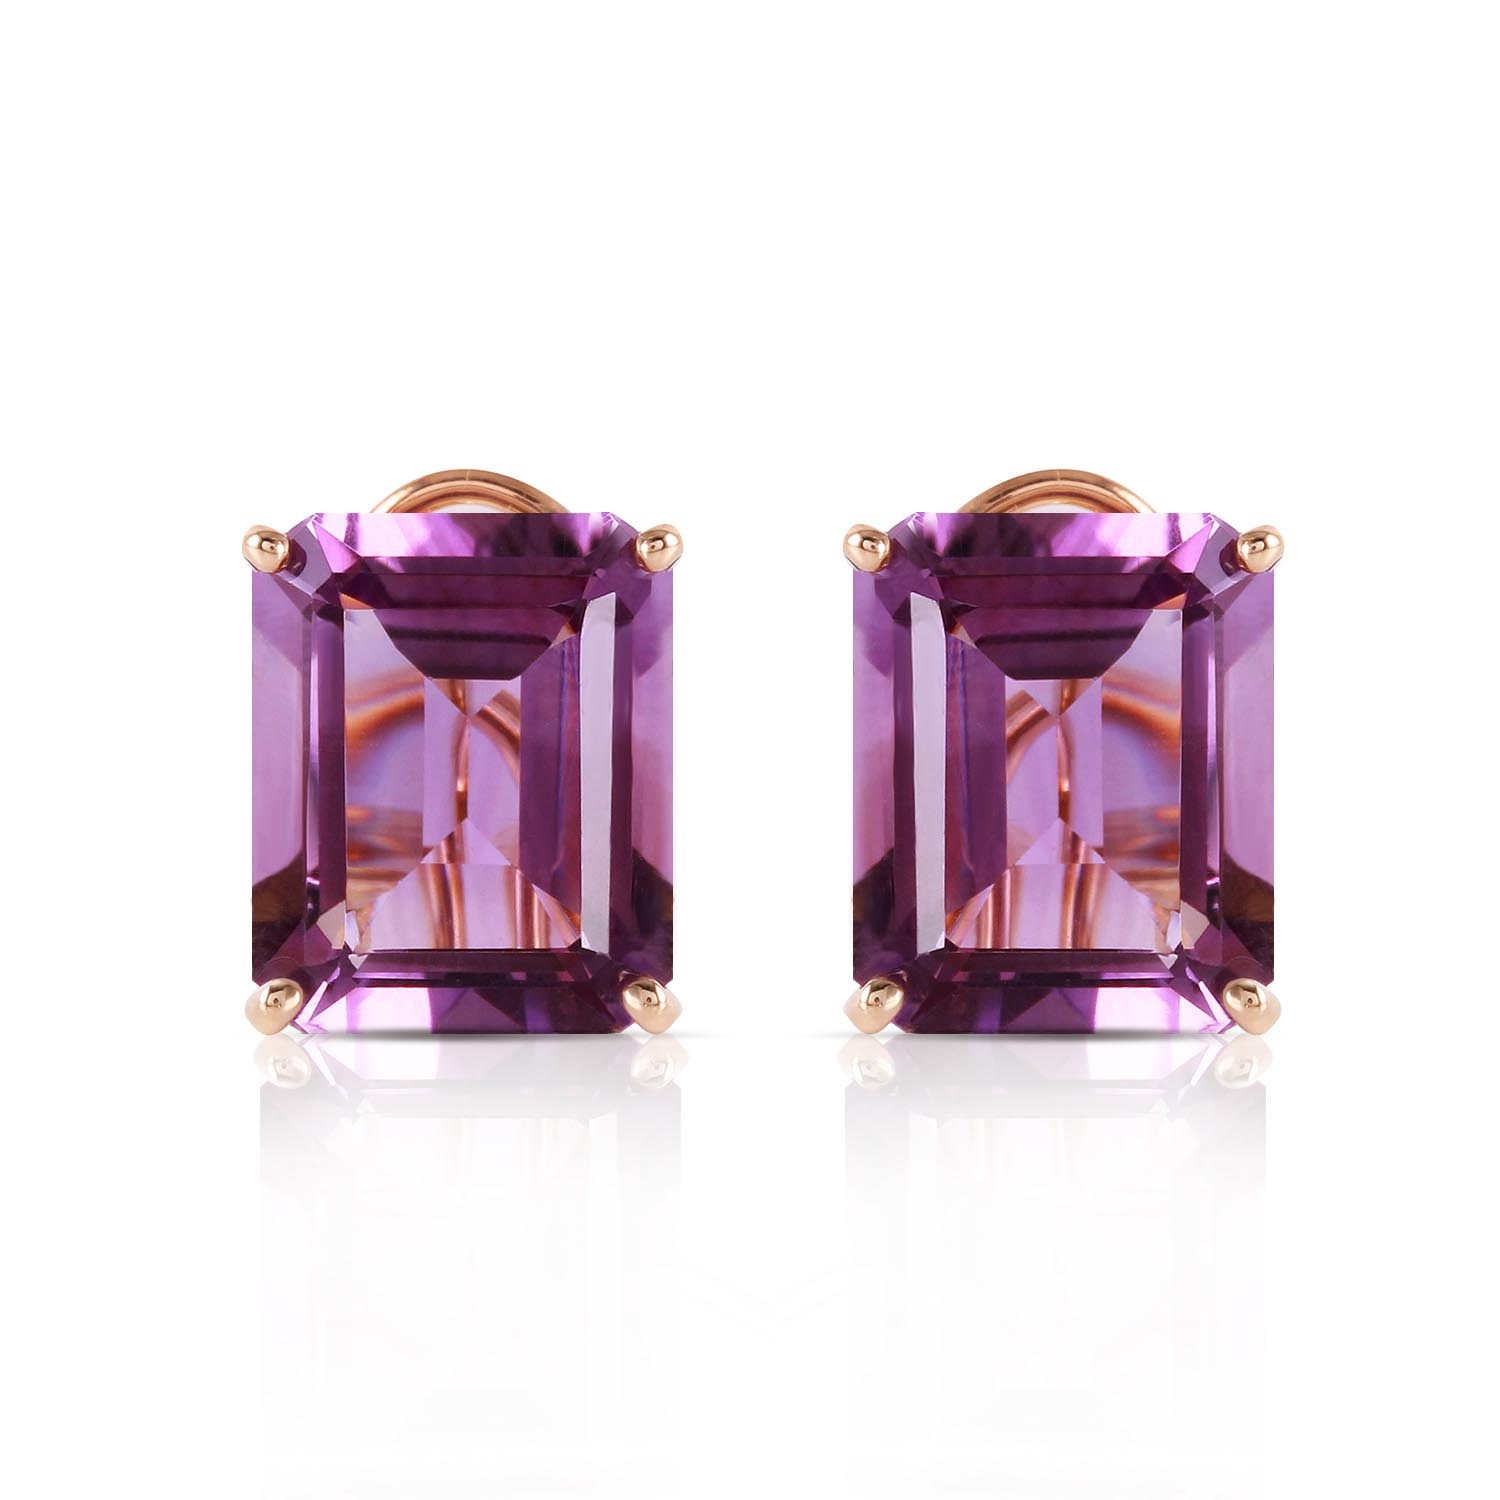 Amethyst Stud Earrings 13.0ctw in 14K Gold